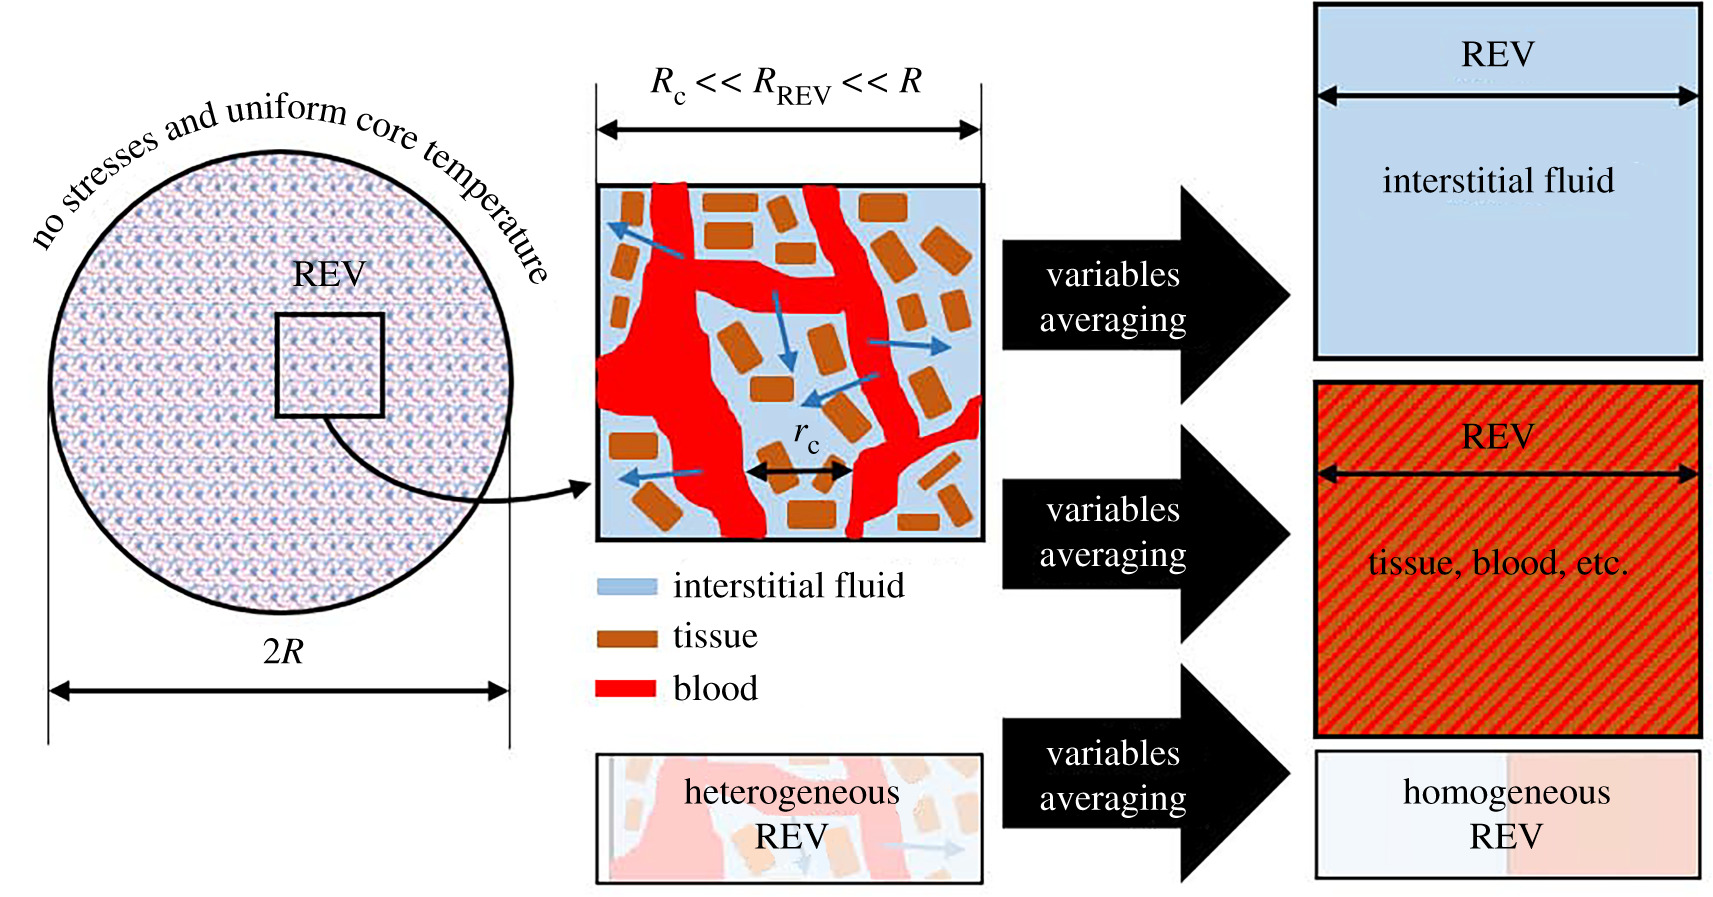 A thermoporoelastic model for fluid transport in tumour tissues